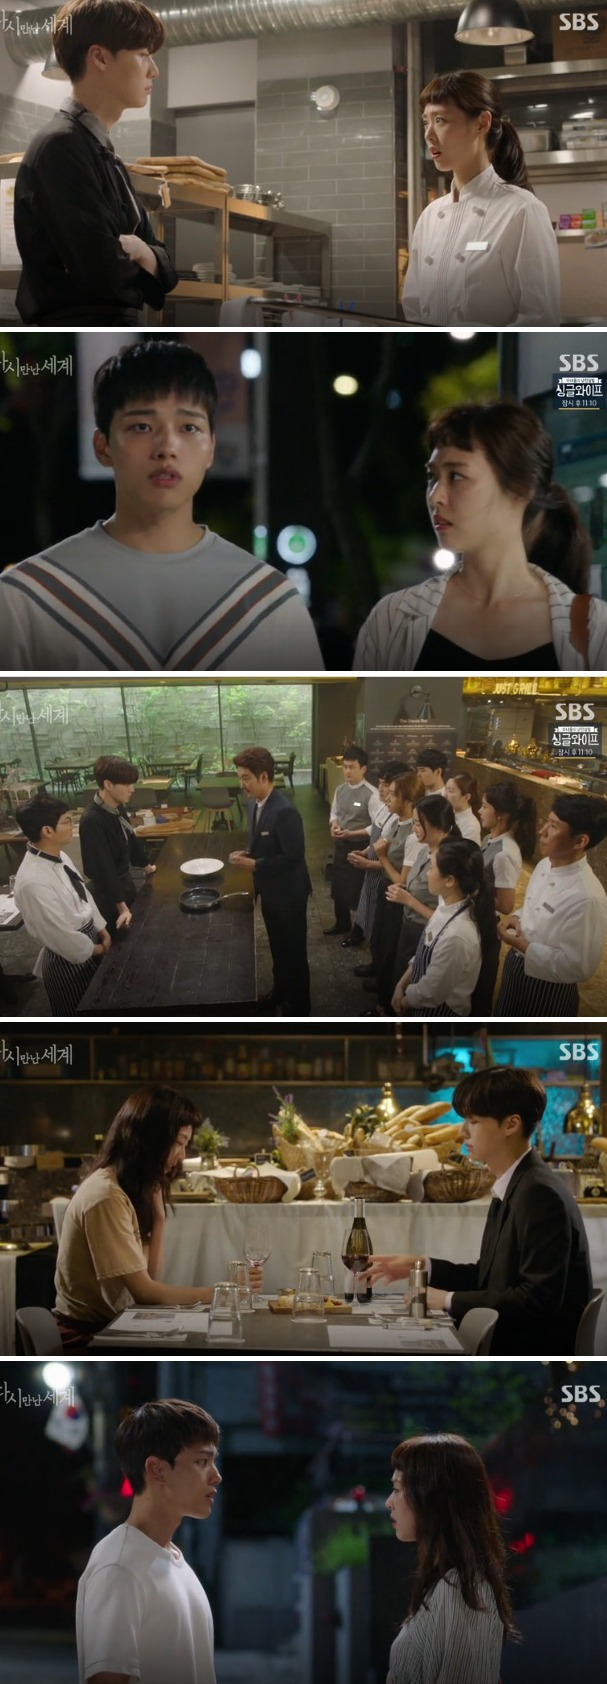 [Spoiler] Added episodes 9 and 10 captures for the Korean drama 'Reunited Worlds'